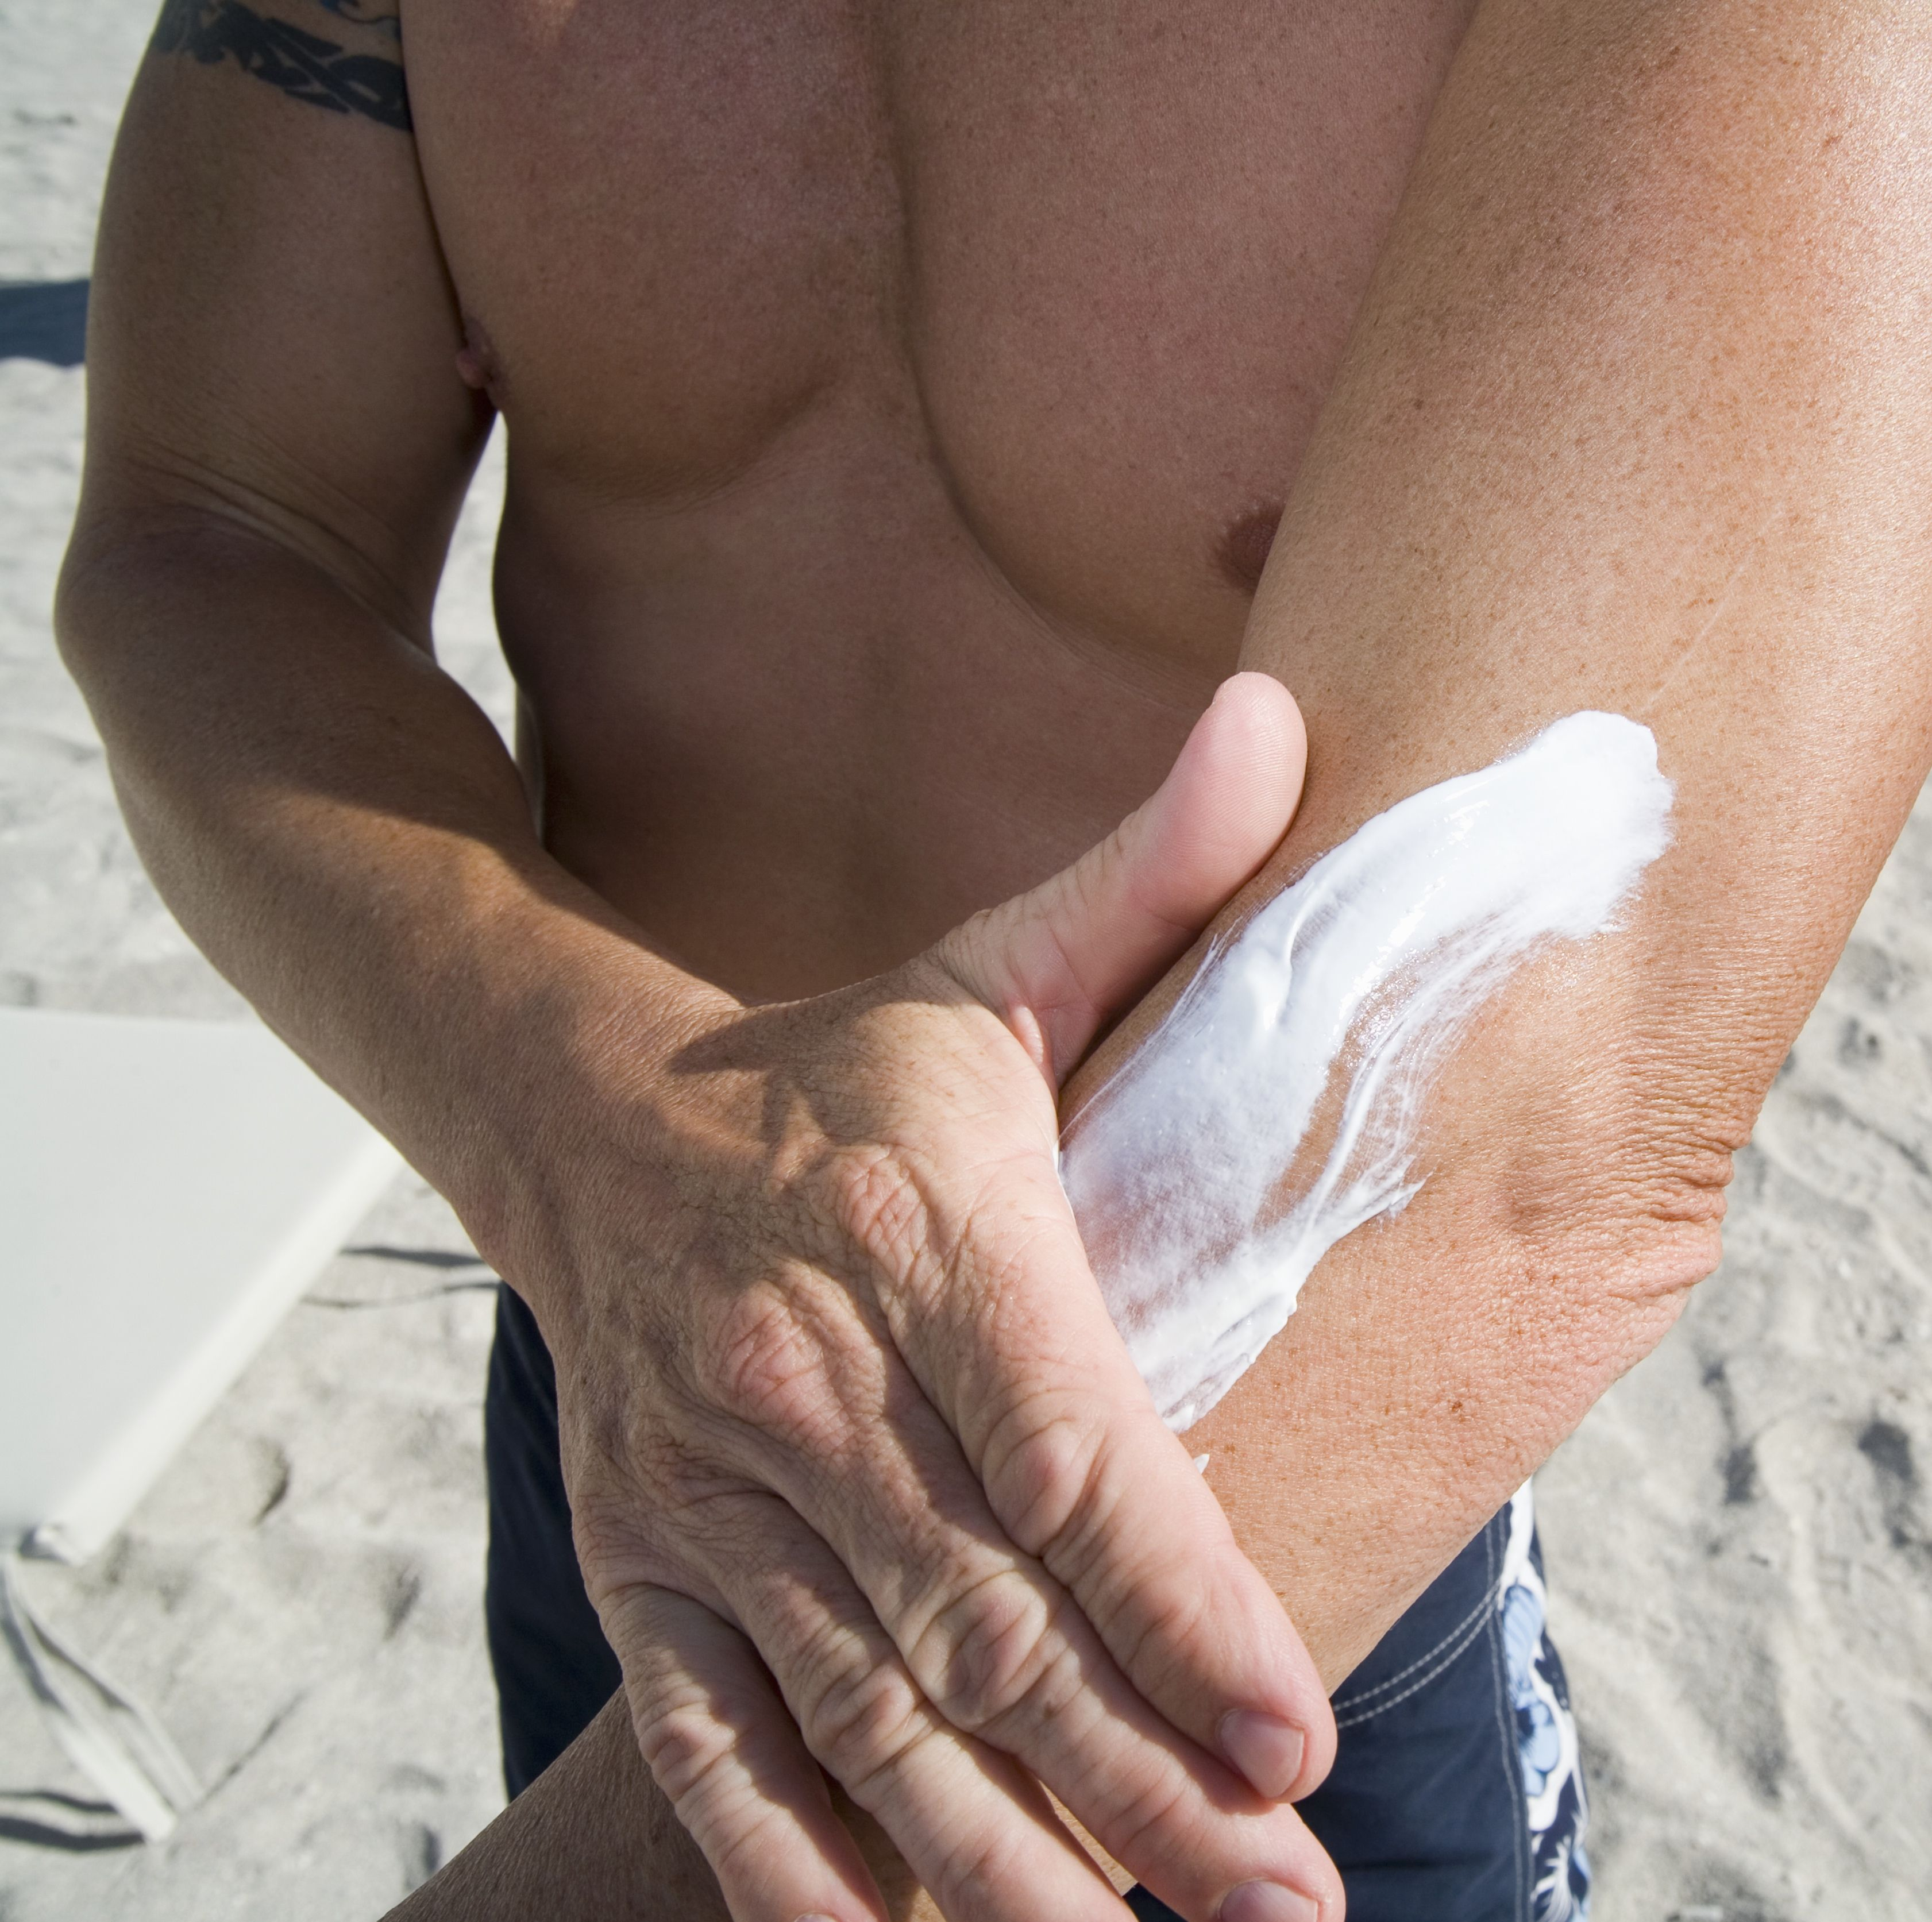 Man standing on beach and applying sun cream to arm